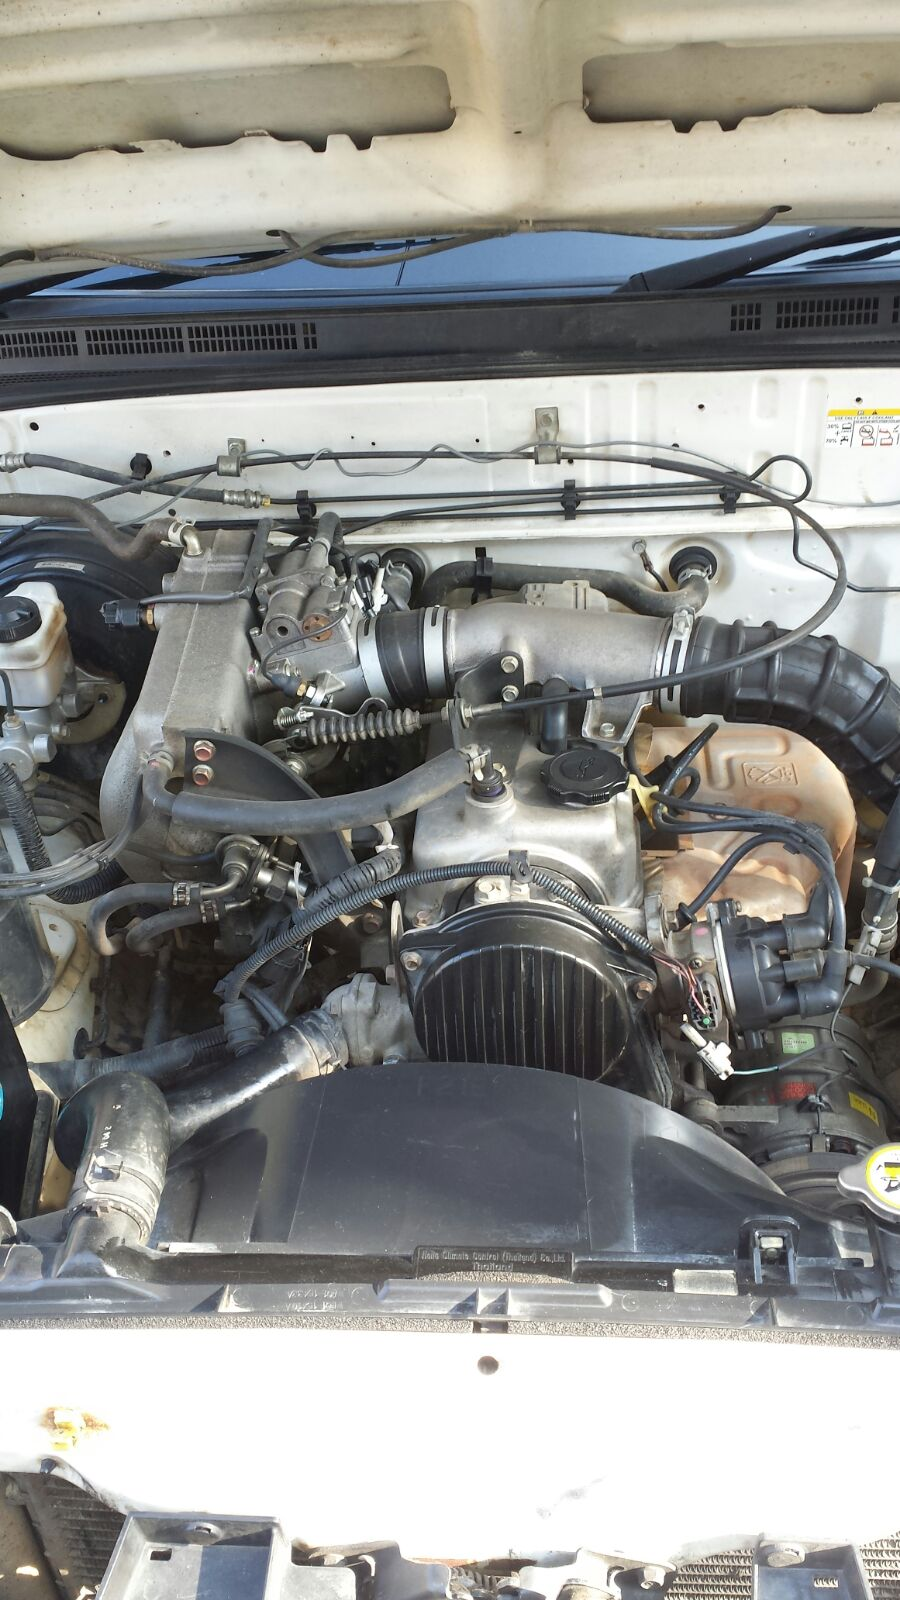 2008 Ford ranger 2.2I motor and box to swop for ford v6 motor and box.